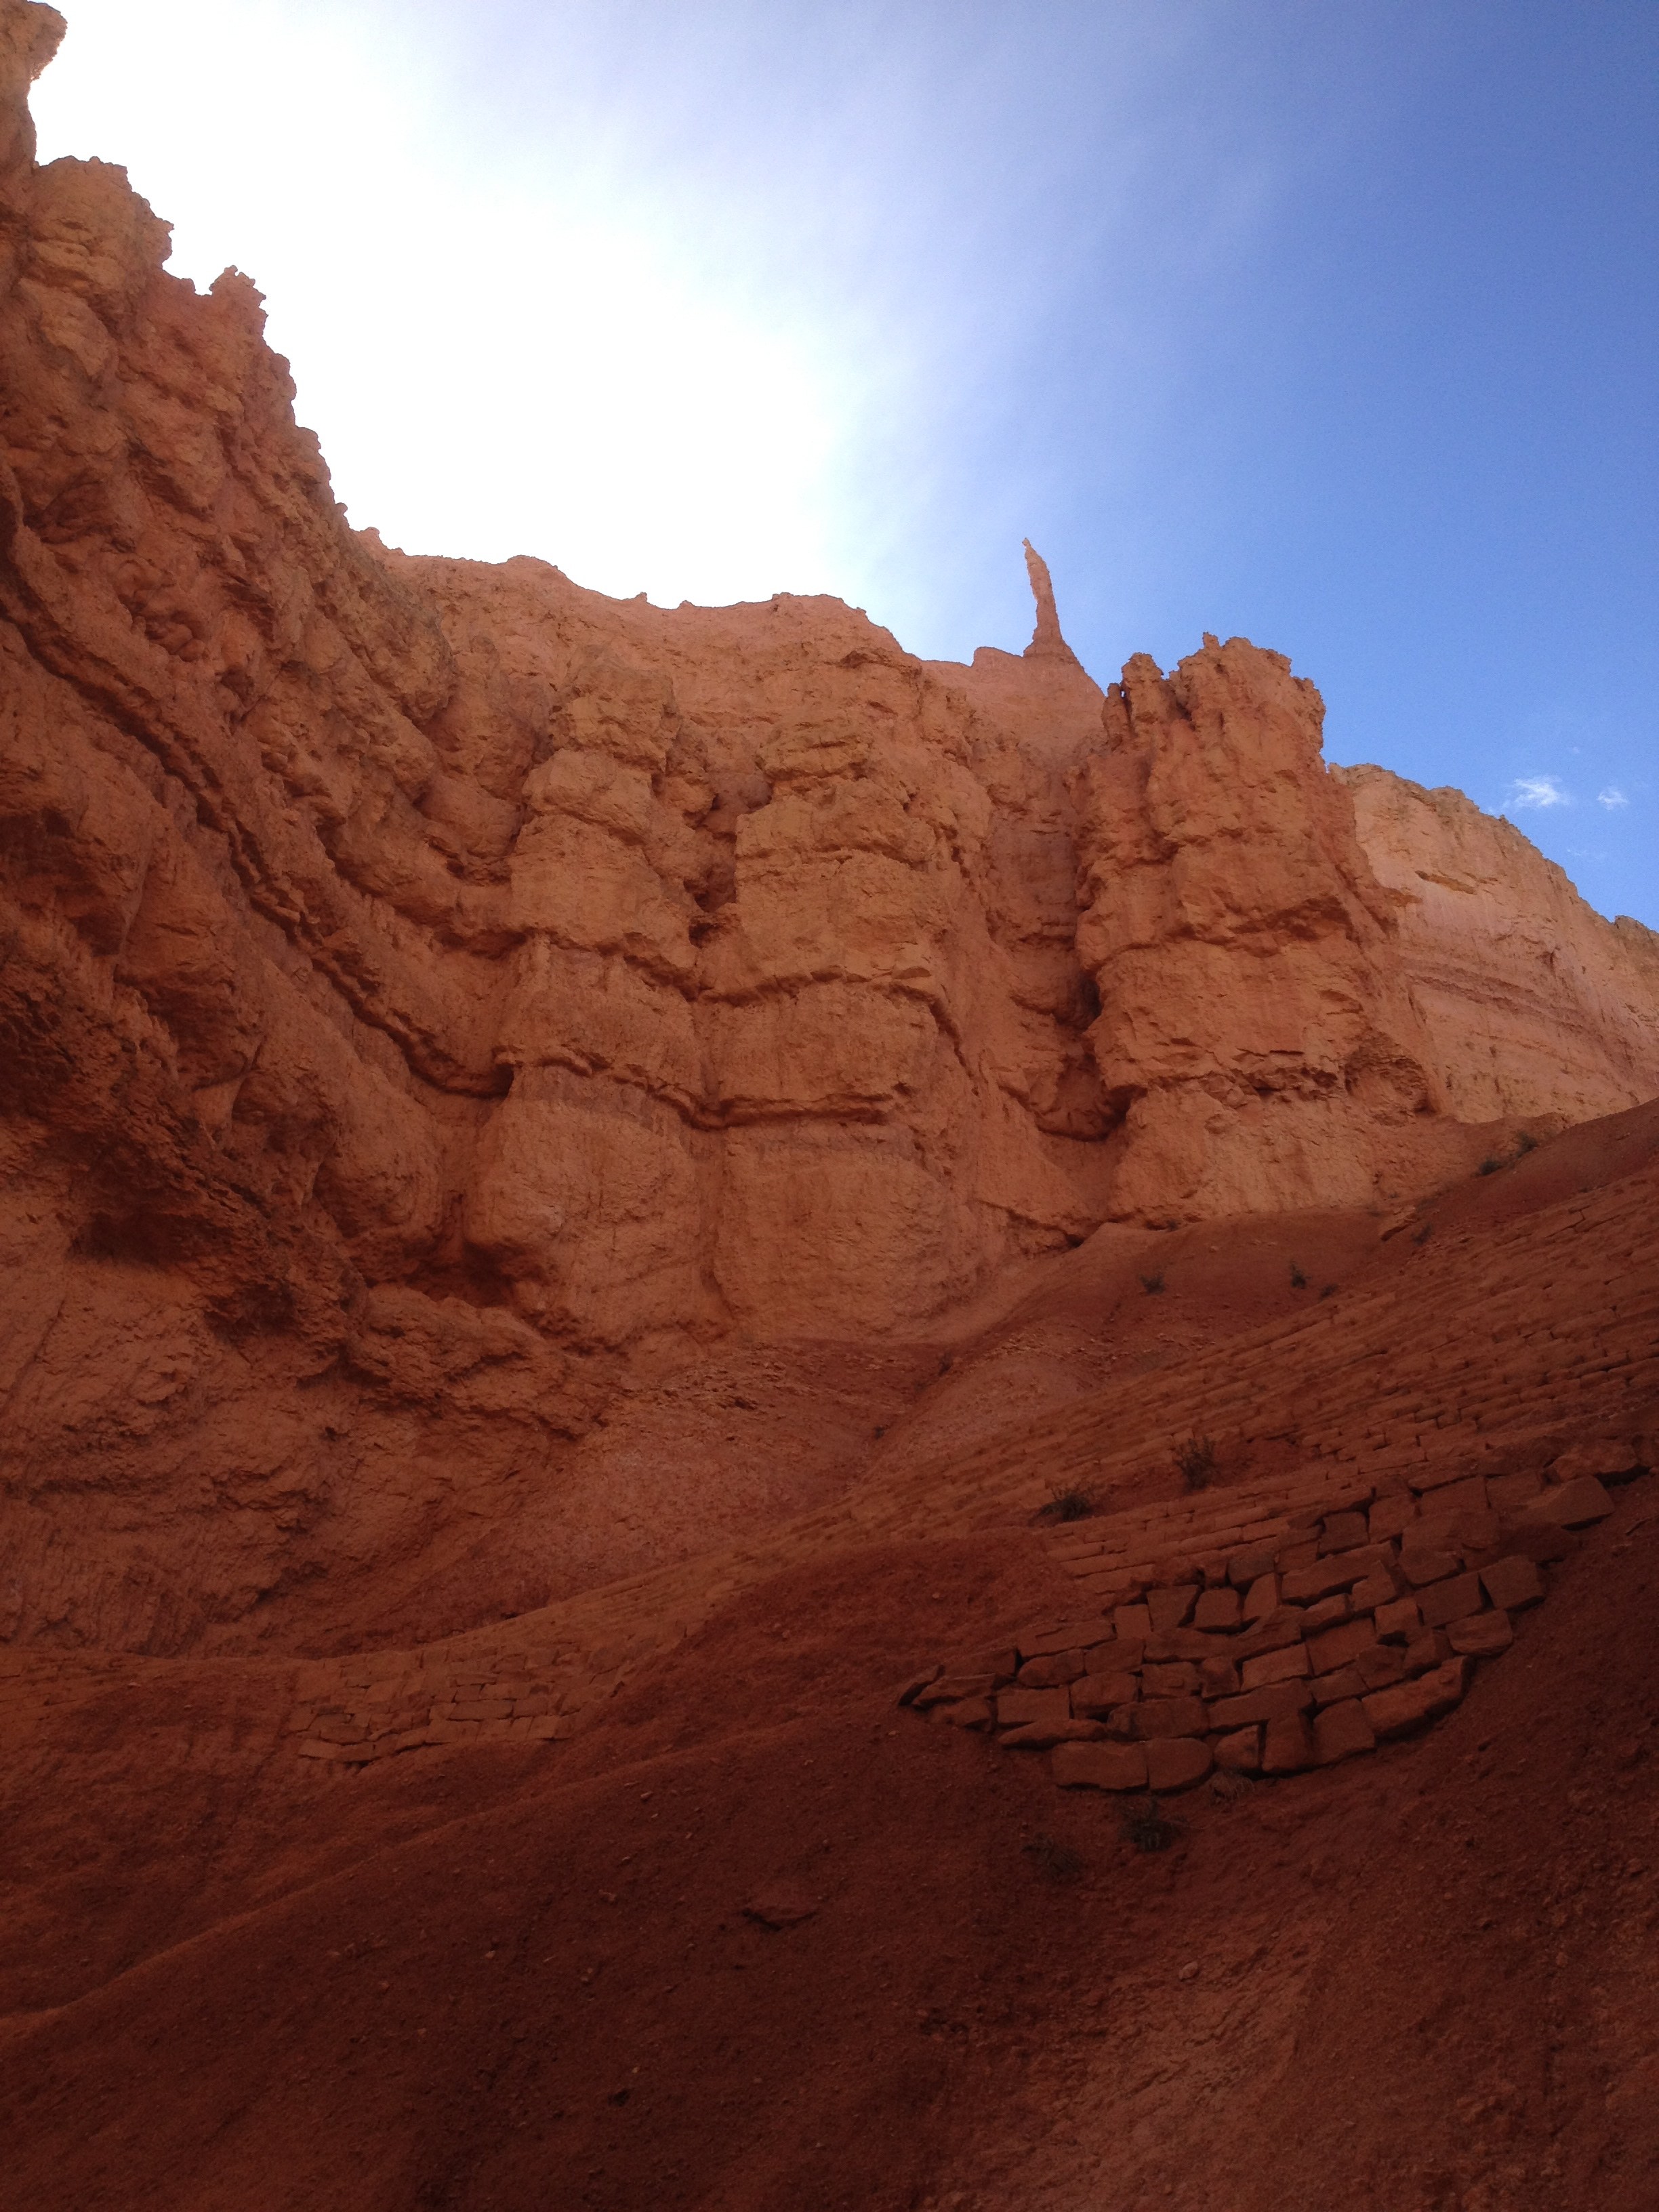 A trail built into a cliff in Bryce Canyon